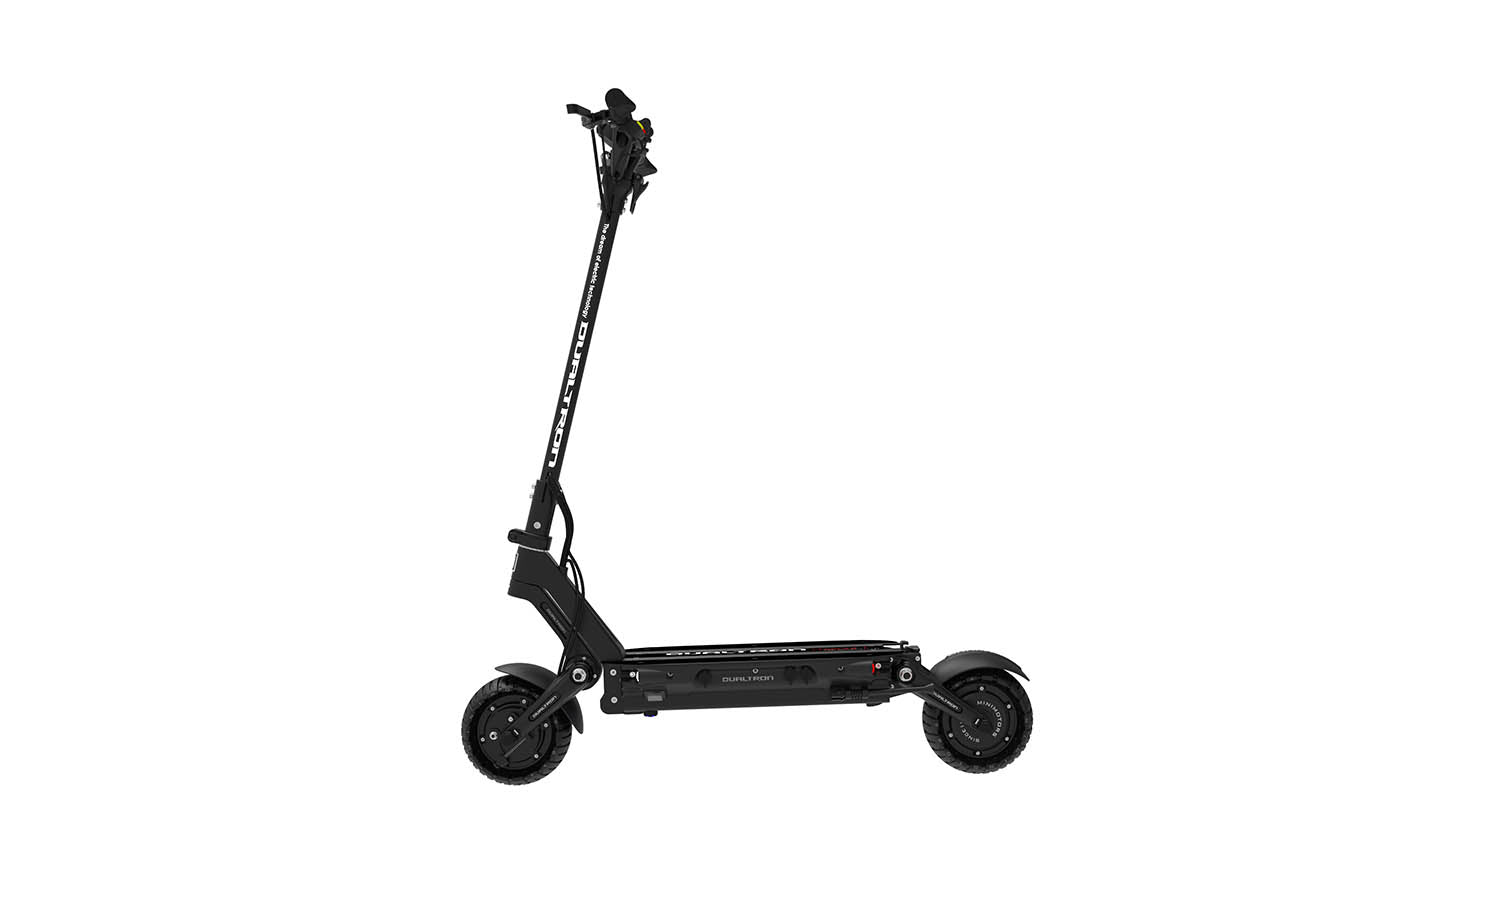 DUALTRON COMPACT ELECTRIC SCOOTER PROFILE PICTURE